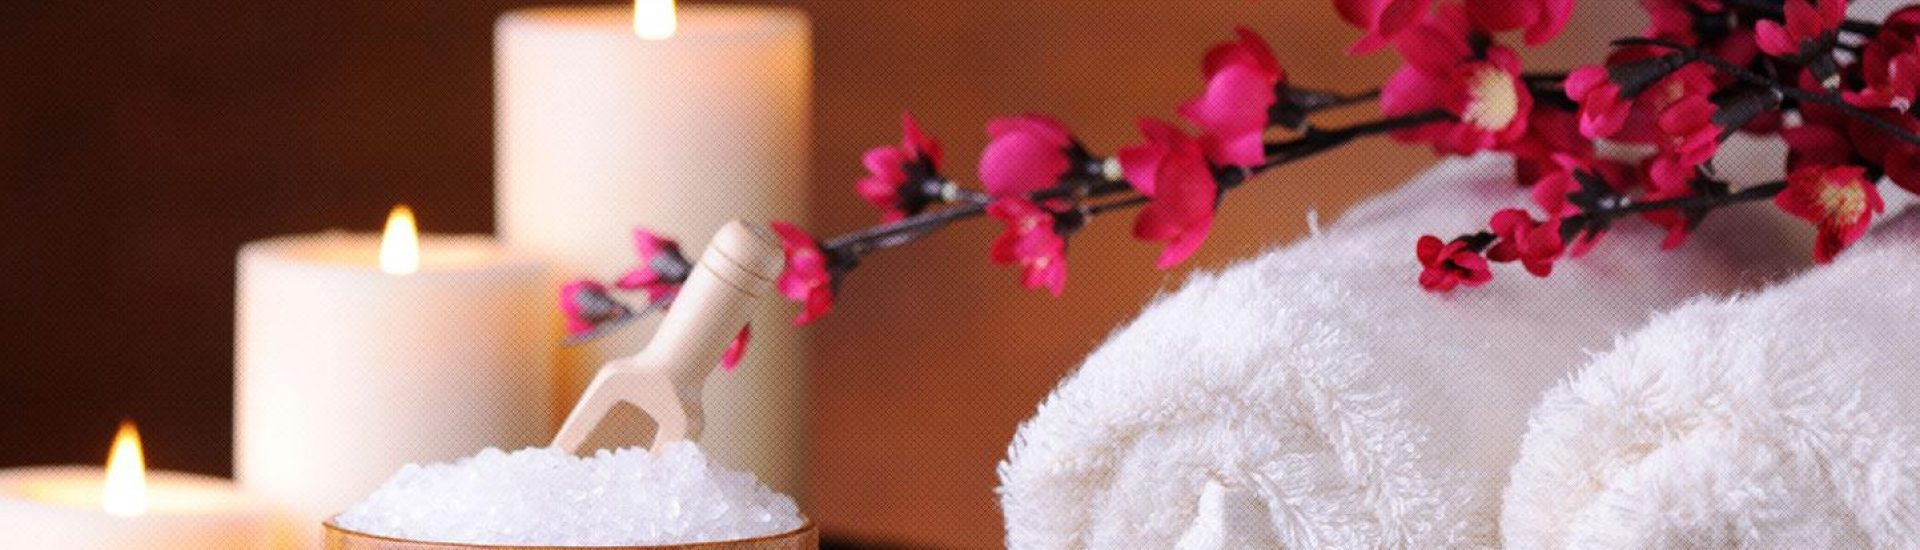 candles_in_the_spa-1487334